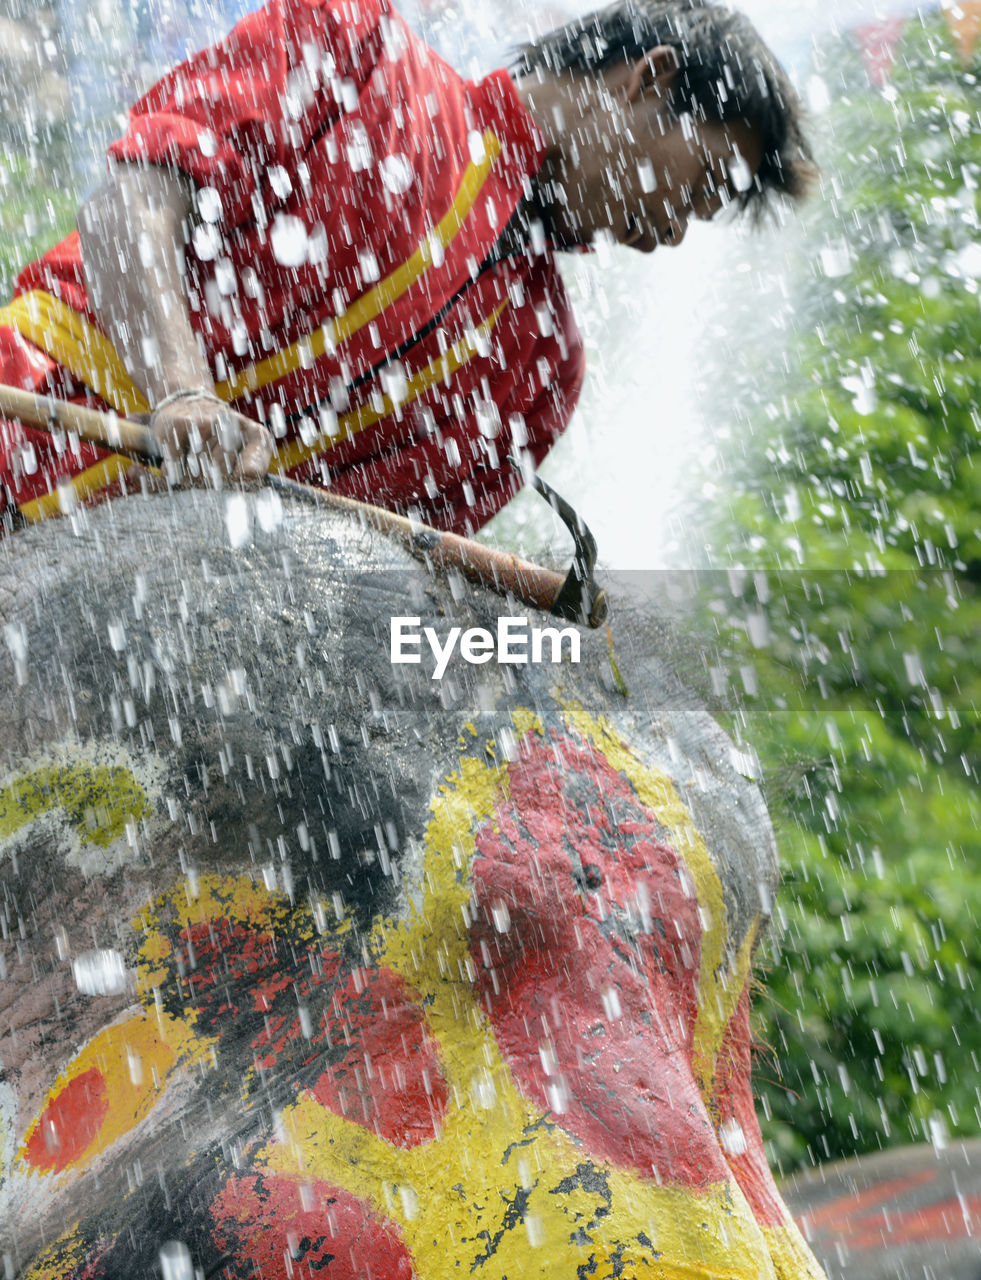 motion, splashing, blurred motion, water, spraying, speed, wet, long exposure, outdoors, fun, day, activity, adventure, sport, waterfall, nature, close-up, no people